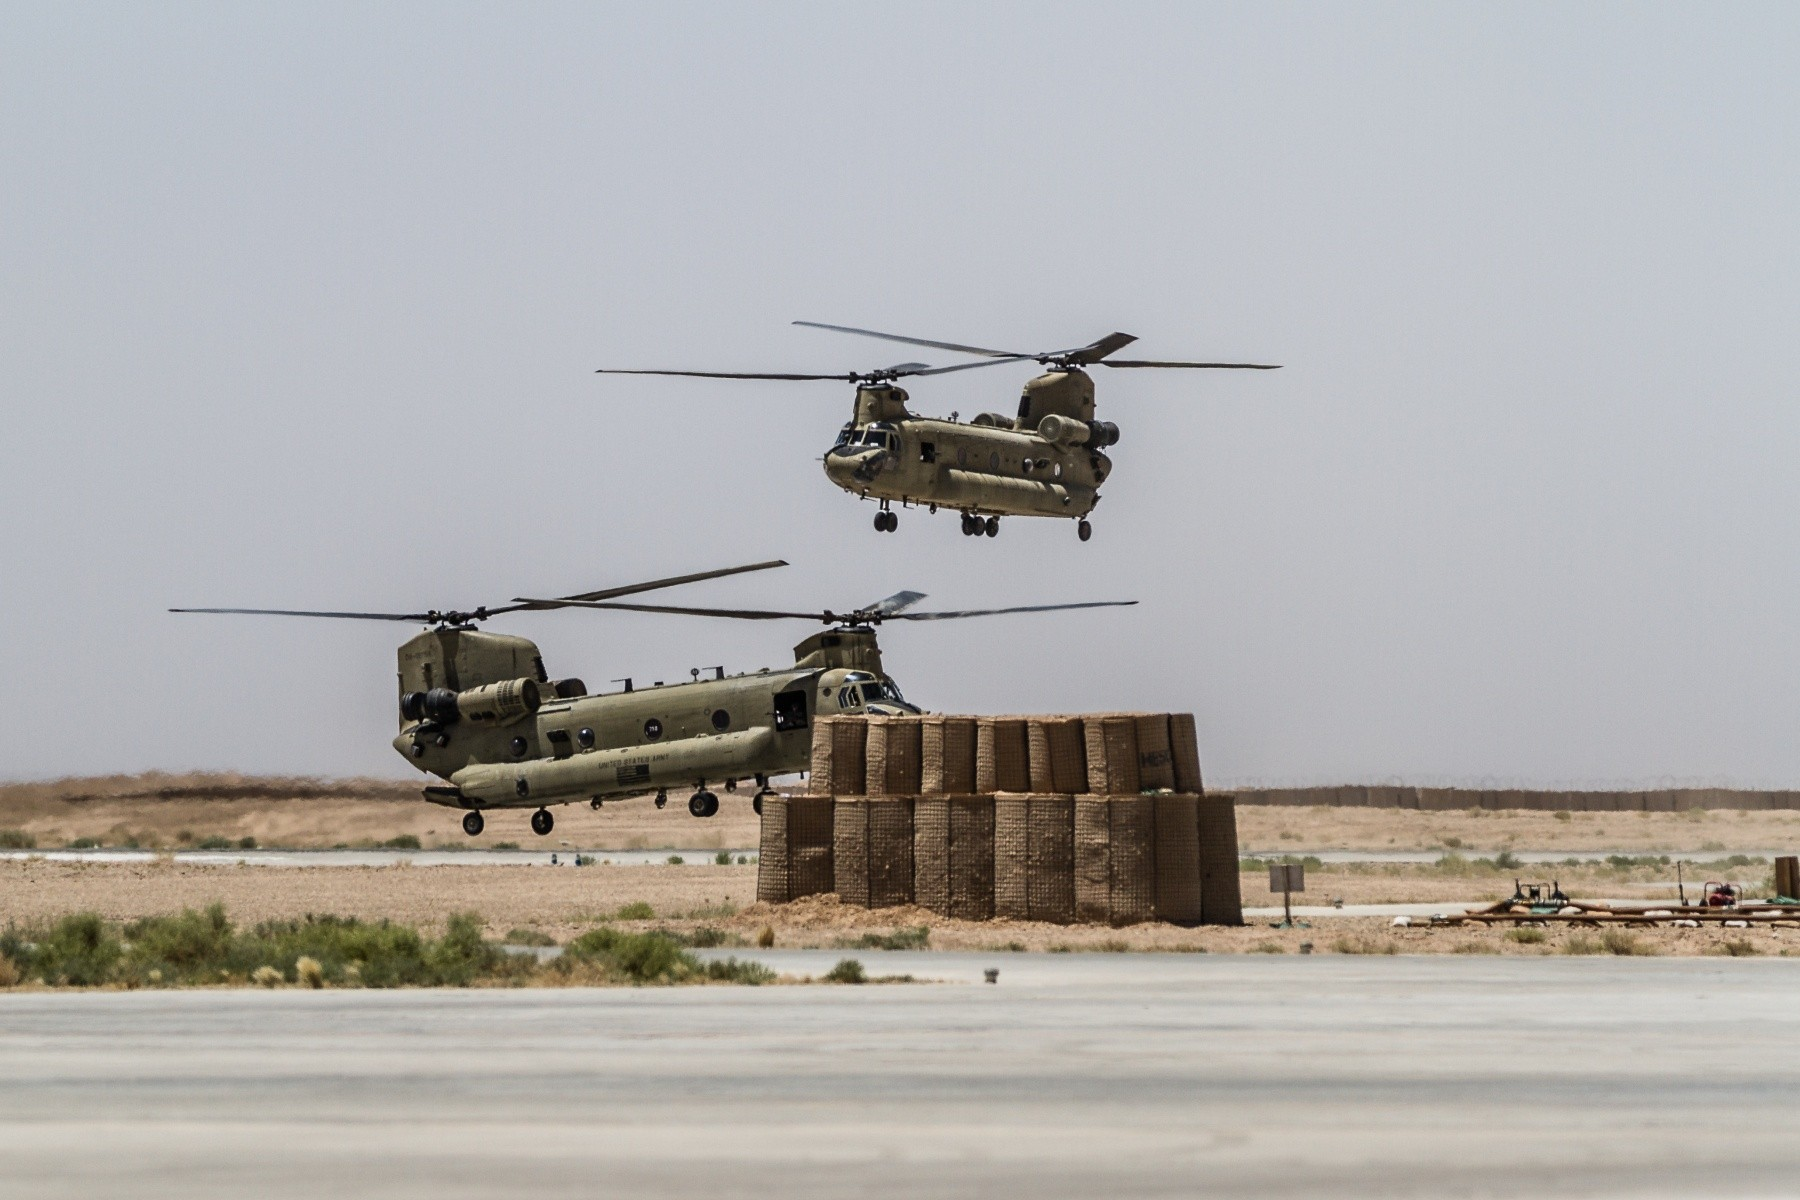 ... Helmand Province, Afghanistan, June 21, 2017. The Warhawks provide aviation support to U.S. Forces Afghanistan as part of Operation Freedom's Sentinel.